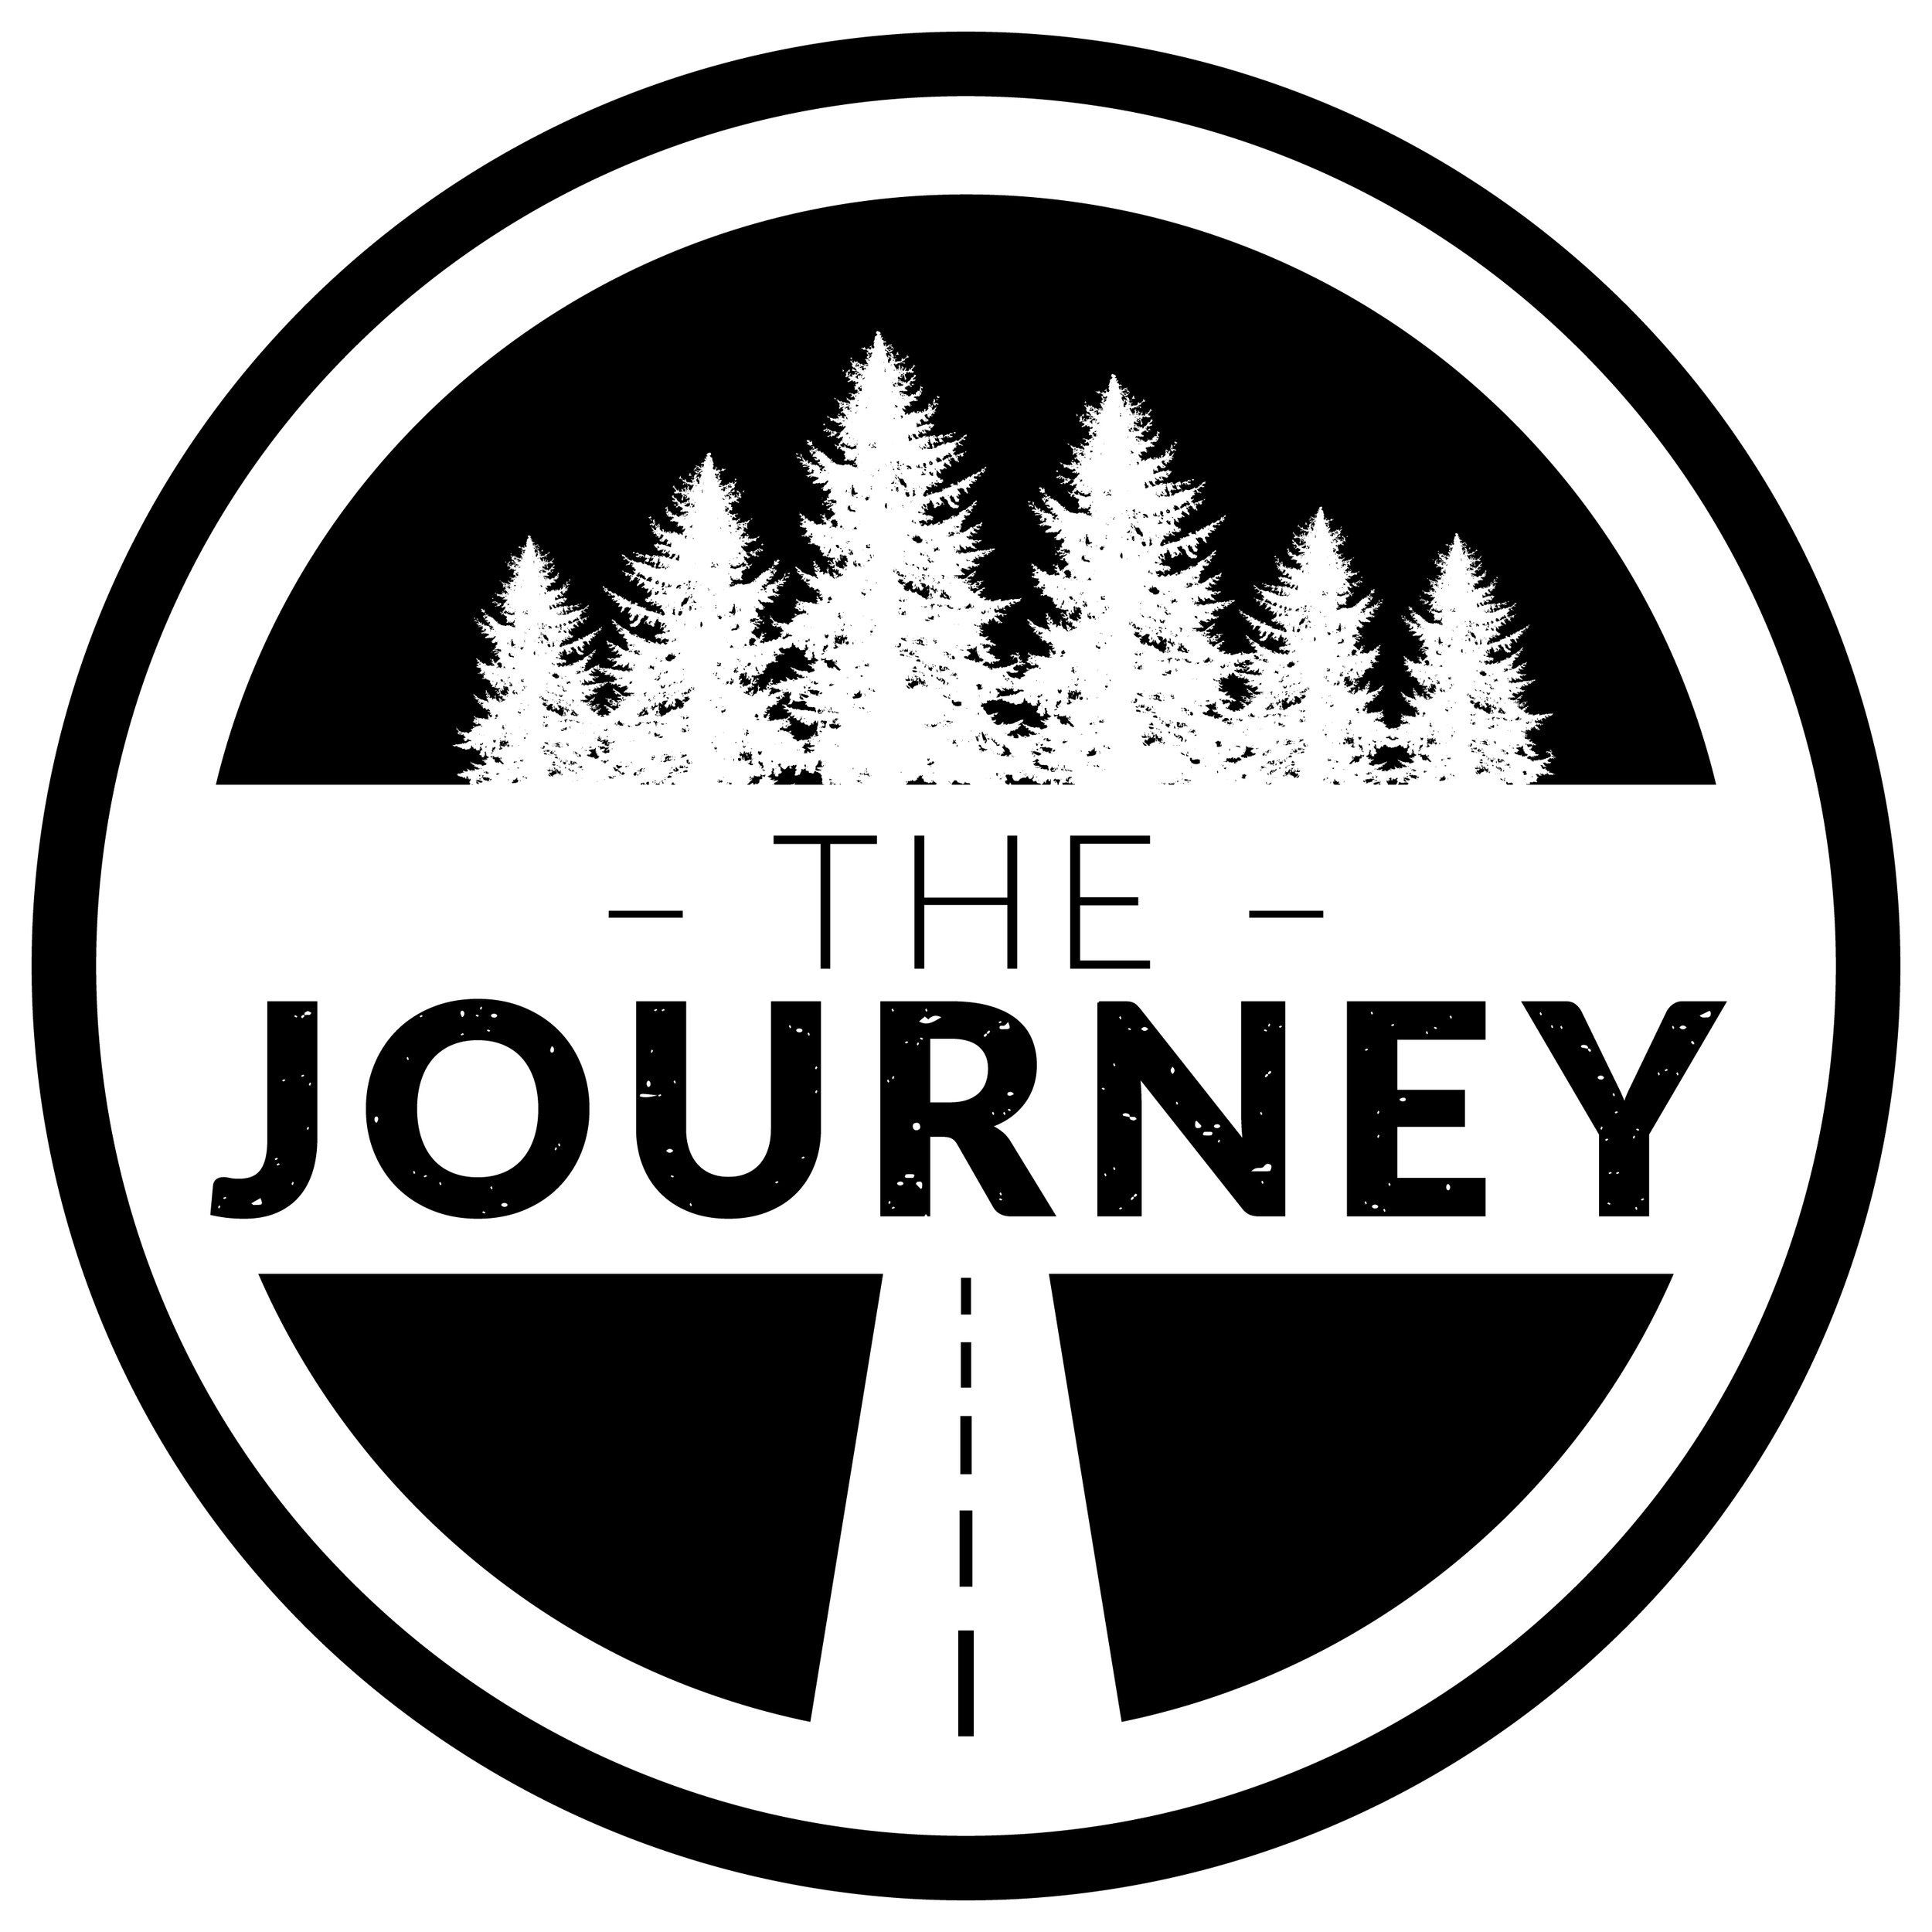 THE JOURNEY @ 10:17 - We believe that our relationship with God is a journey that never stops. Just like any other journey there will be ups and downs along the way, but we believe we are all on this journey together to help and encourage one another. Join us on this journey towards God!